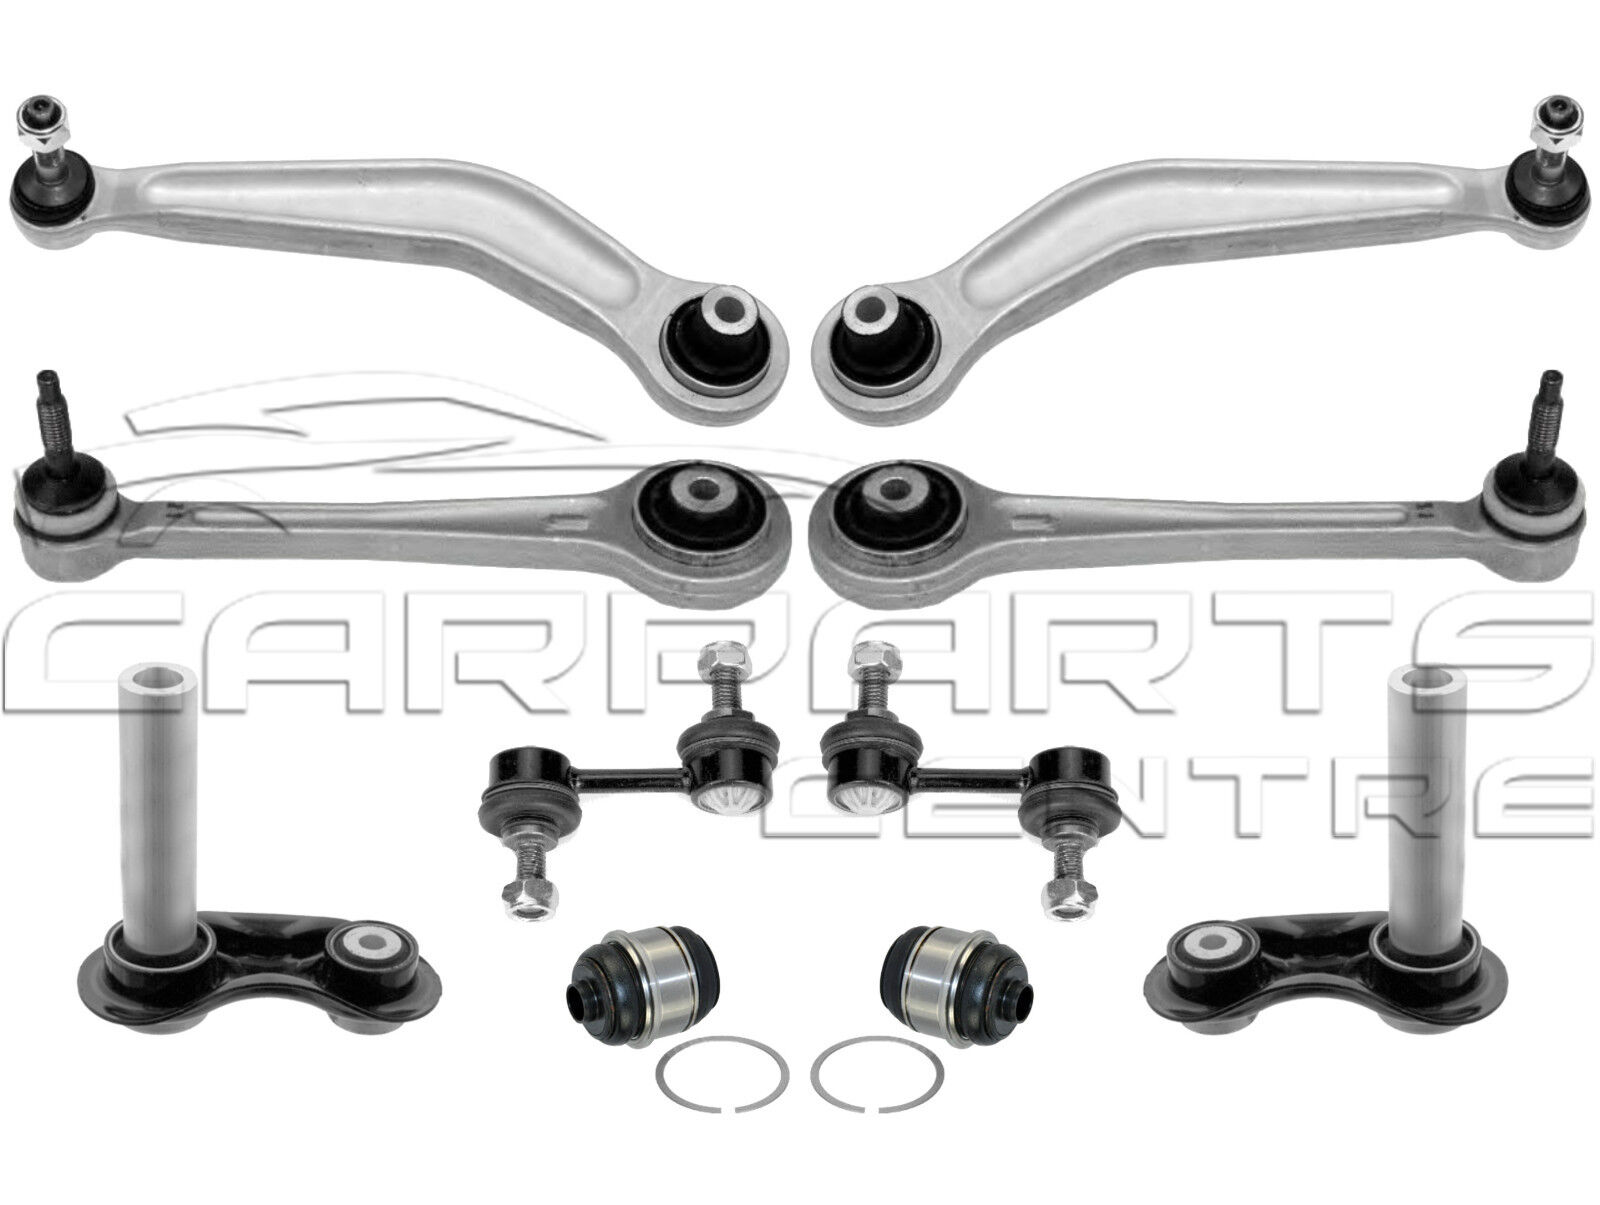 REAR SUSPENSION CONTROL ARMS KIT WITH LINKS FOR BMW 5 SERIES  E39